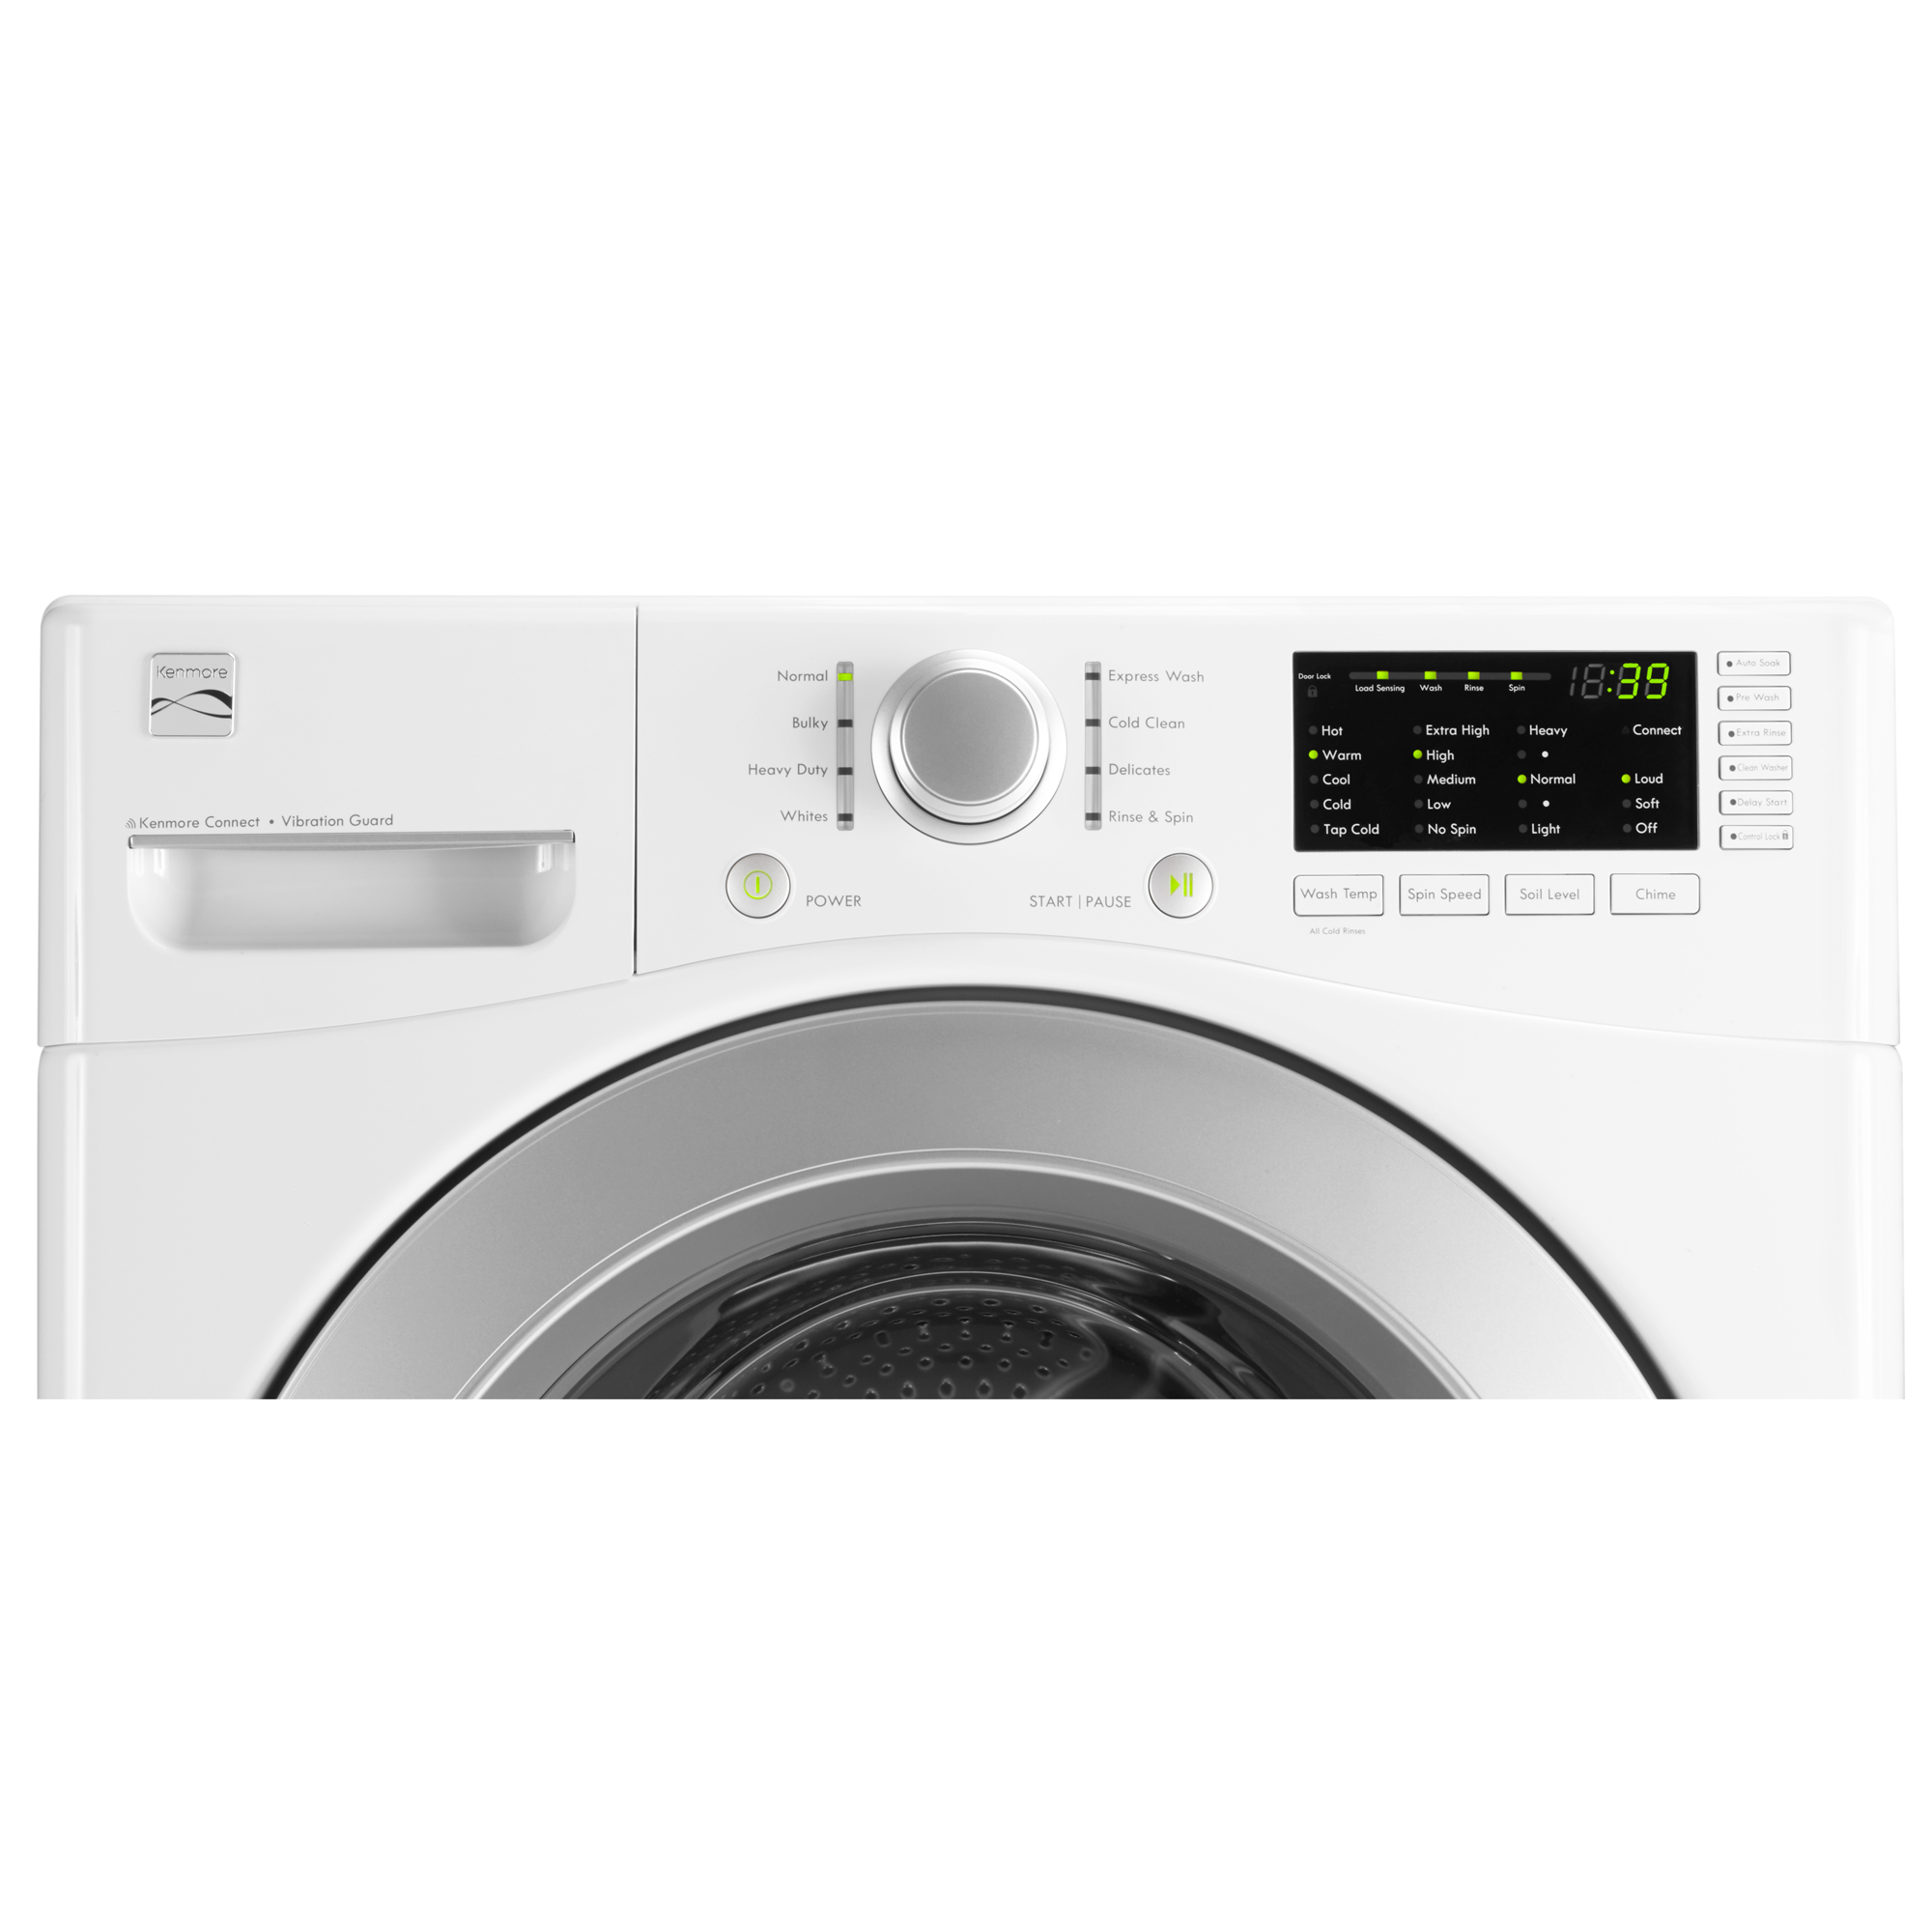 Kenmore 41162 4.3 cu. ft. Front-Load Washer